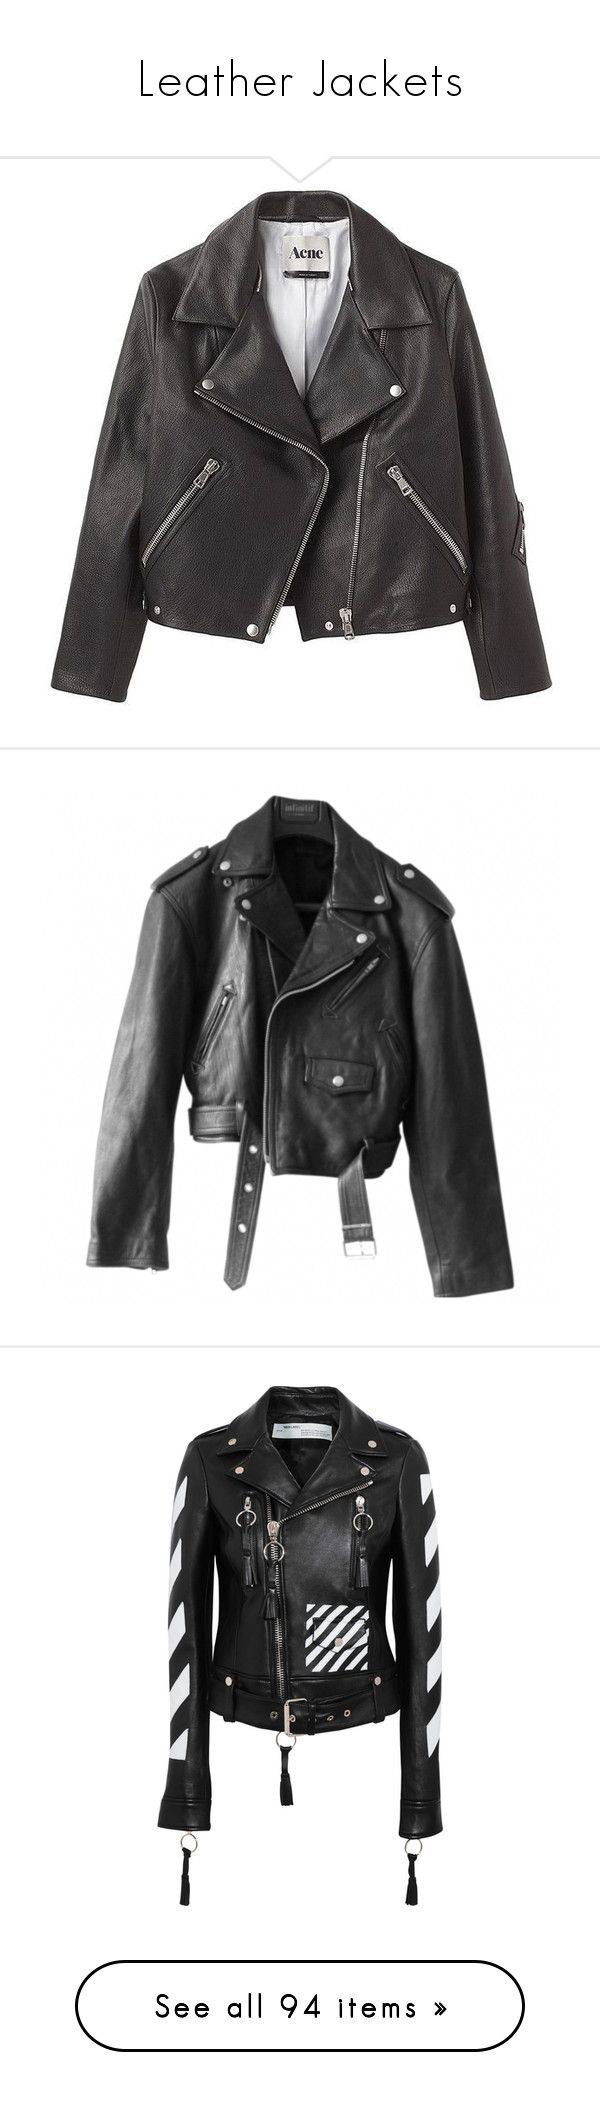 """""""Leather Jackets"""" by vanilla-cupcakee ❤ liked on Polyvore featuring outerwear, jackets, coats, coats & jackets, 100 leather jacket, real leather jackets, genuine leather jackets, leather jackets, leather jacket and leather moto jackets"""